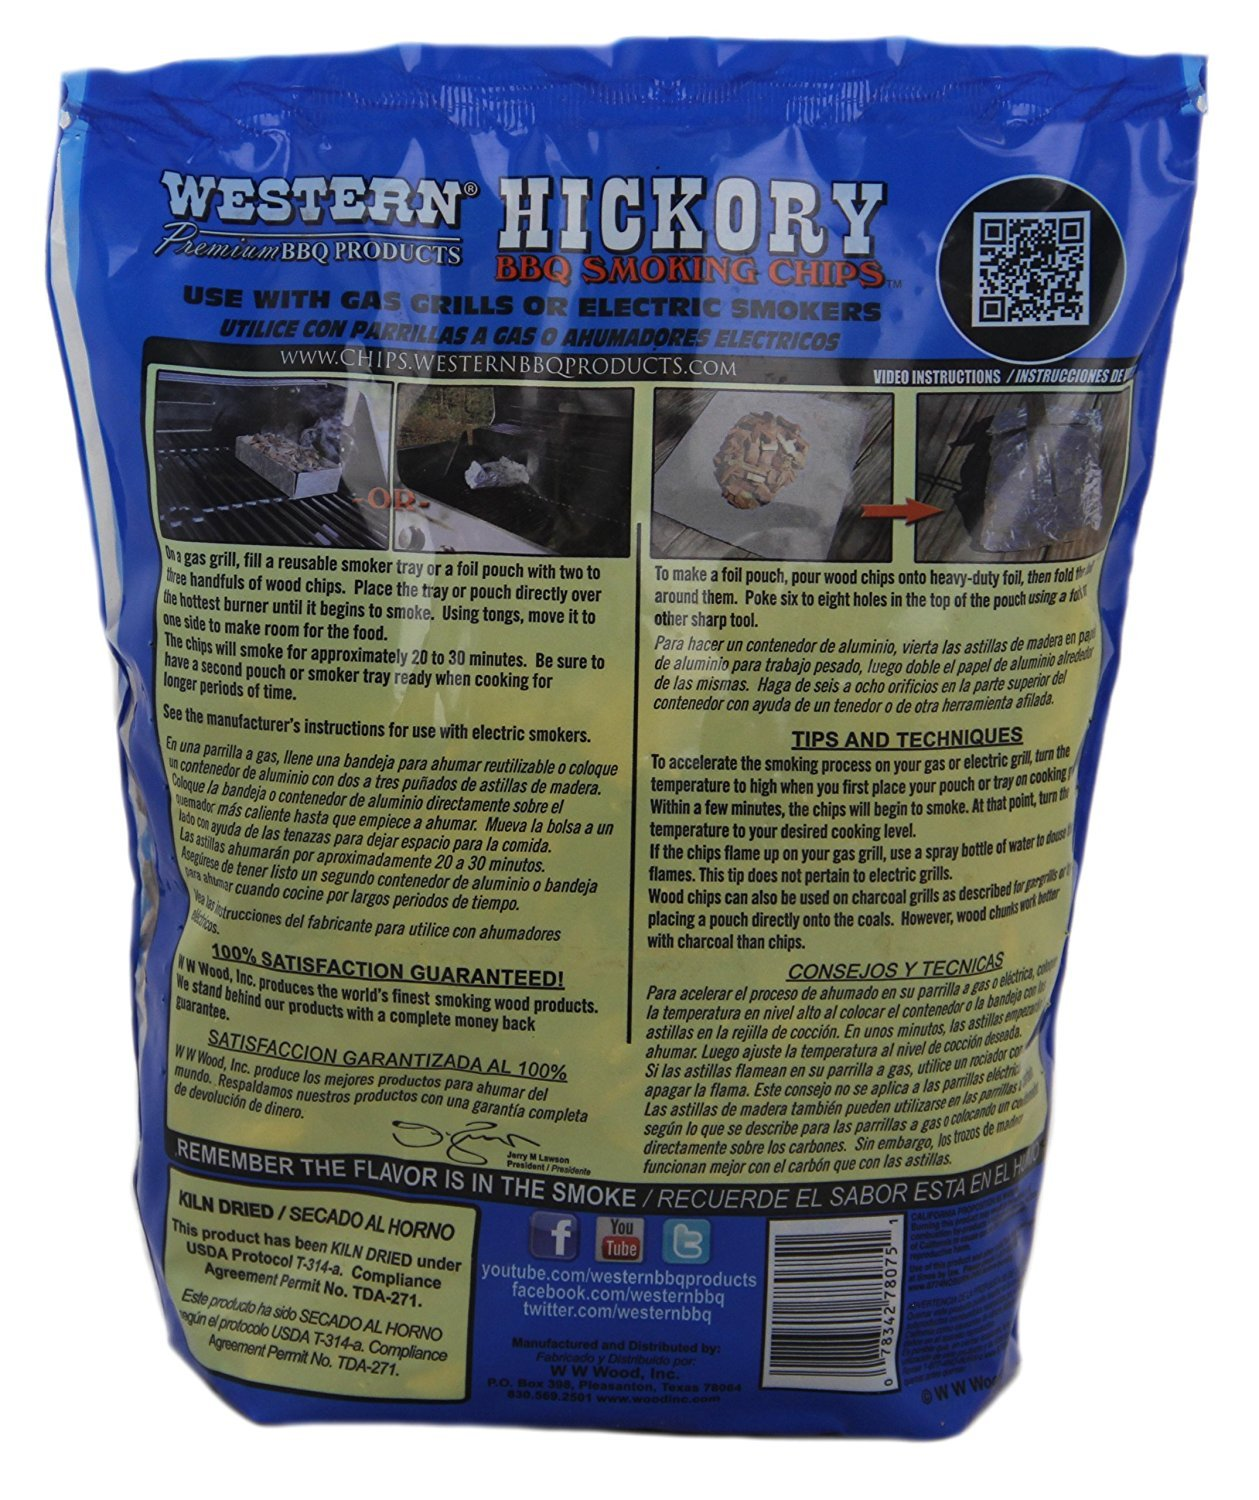 Amazon.com : 2 Pk. Western Hickory BBQ Smoking Chips : Garden & Outdoor